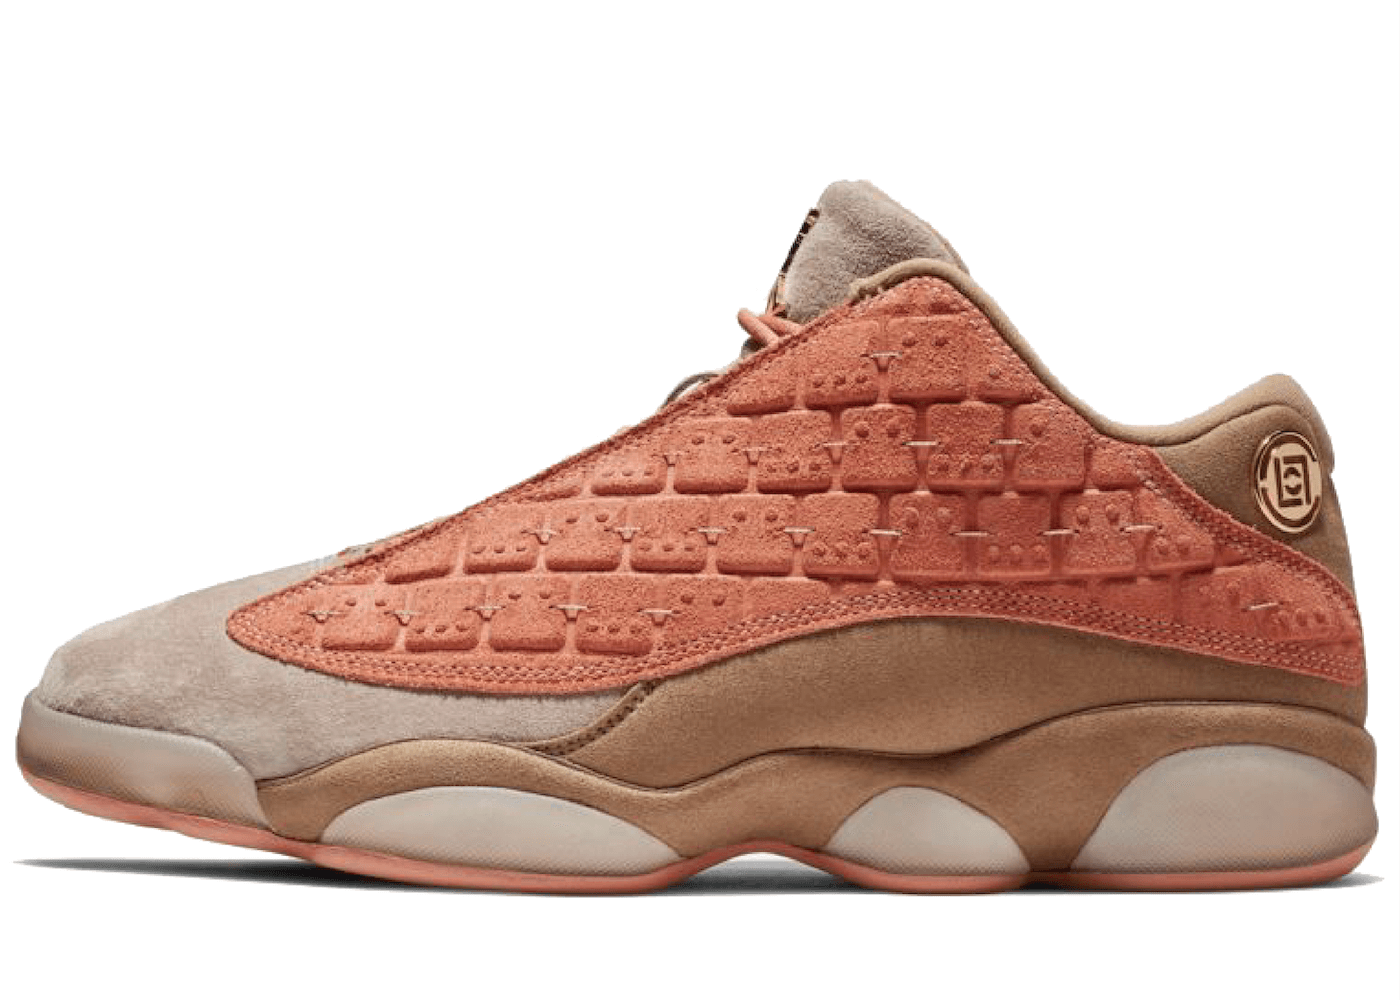 Clot × Nike Air Jordan 13 Retro Low Sepia Stoneの写真